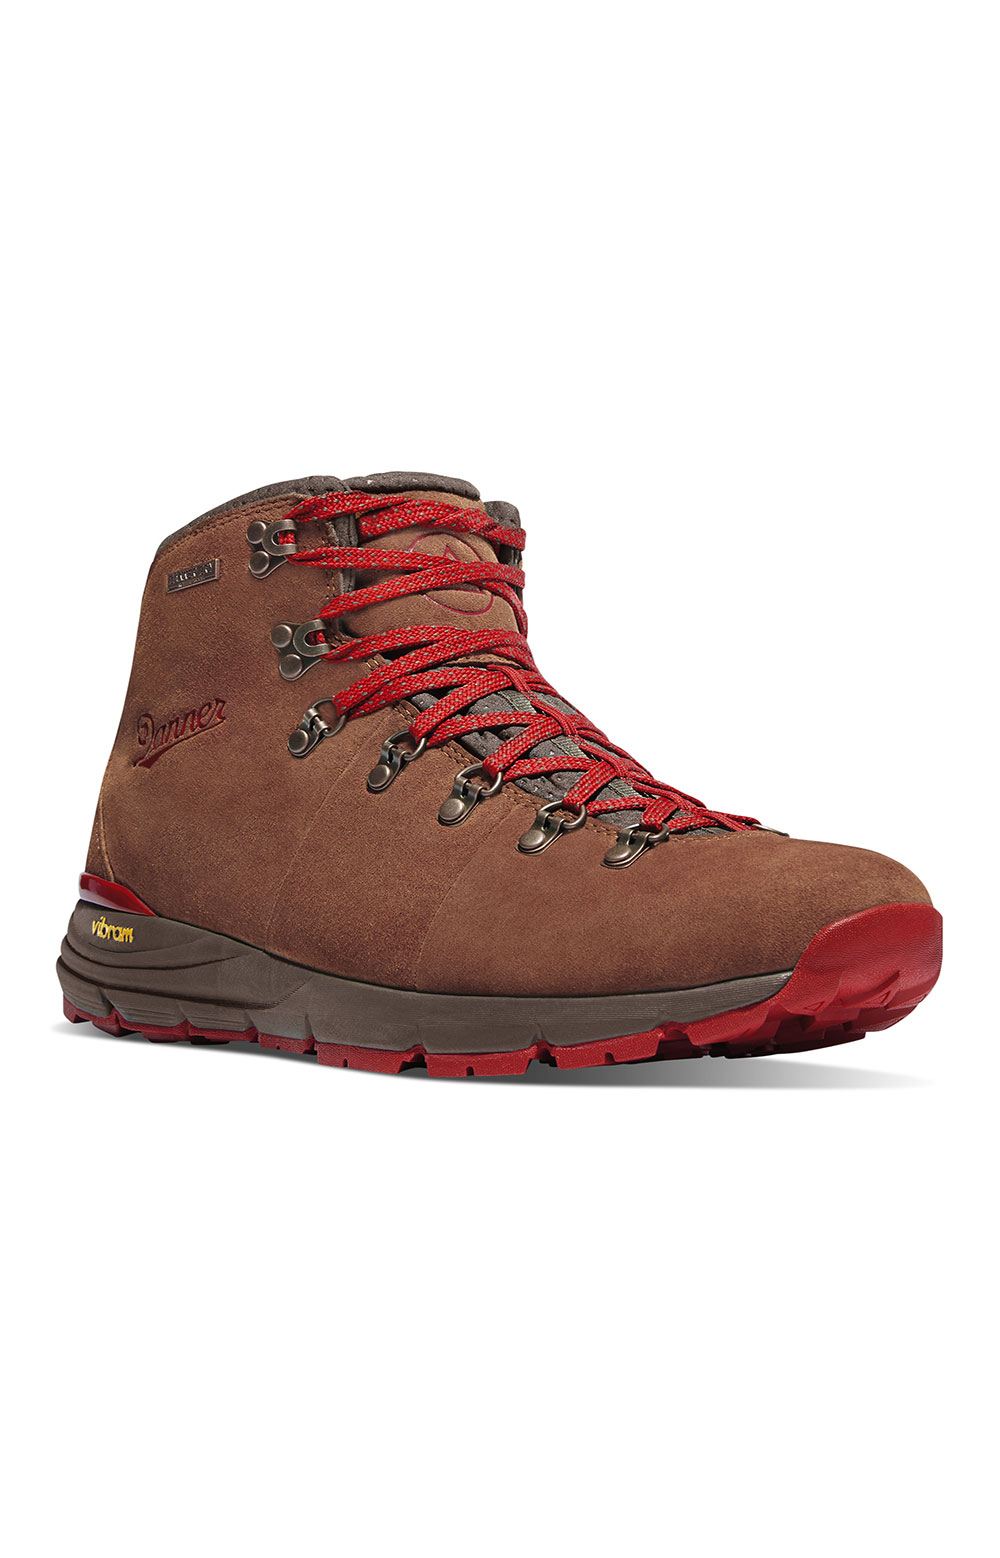 (62241) Mountain 600 Boots - Brown/Red